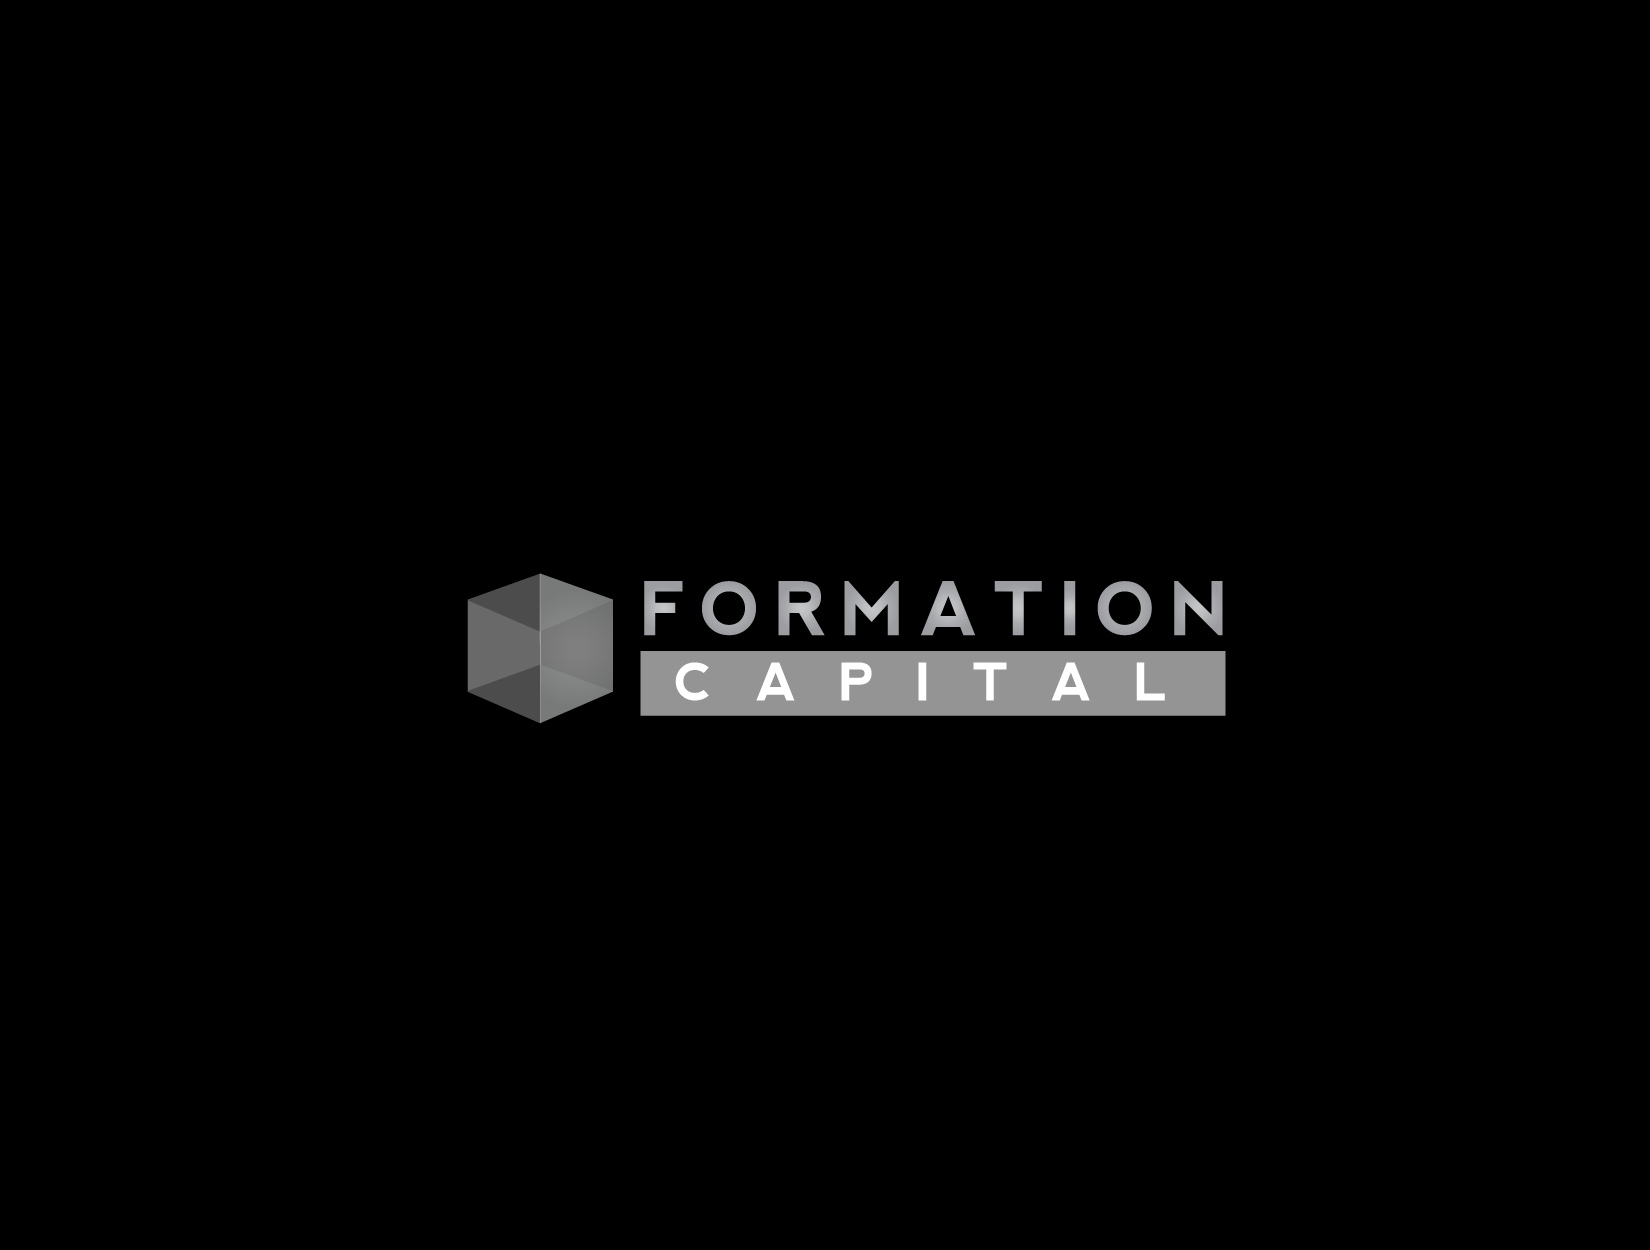 Logo Design by funkeekhan - Entry No. 226 in the Logo Design Contest Inspiring Logo Design for Formation Capital.